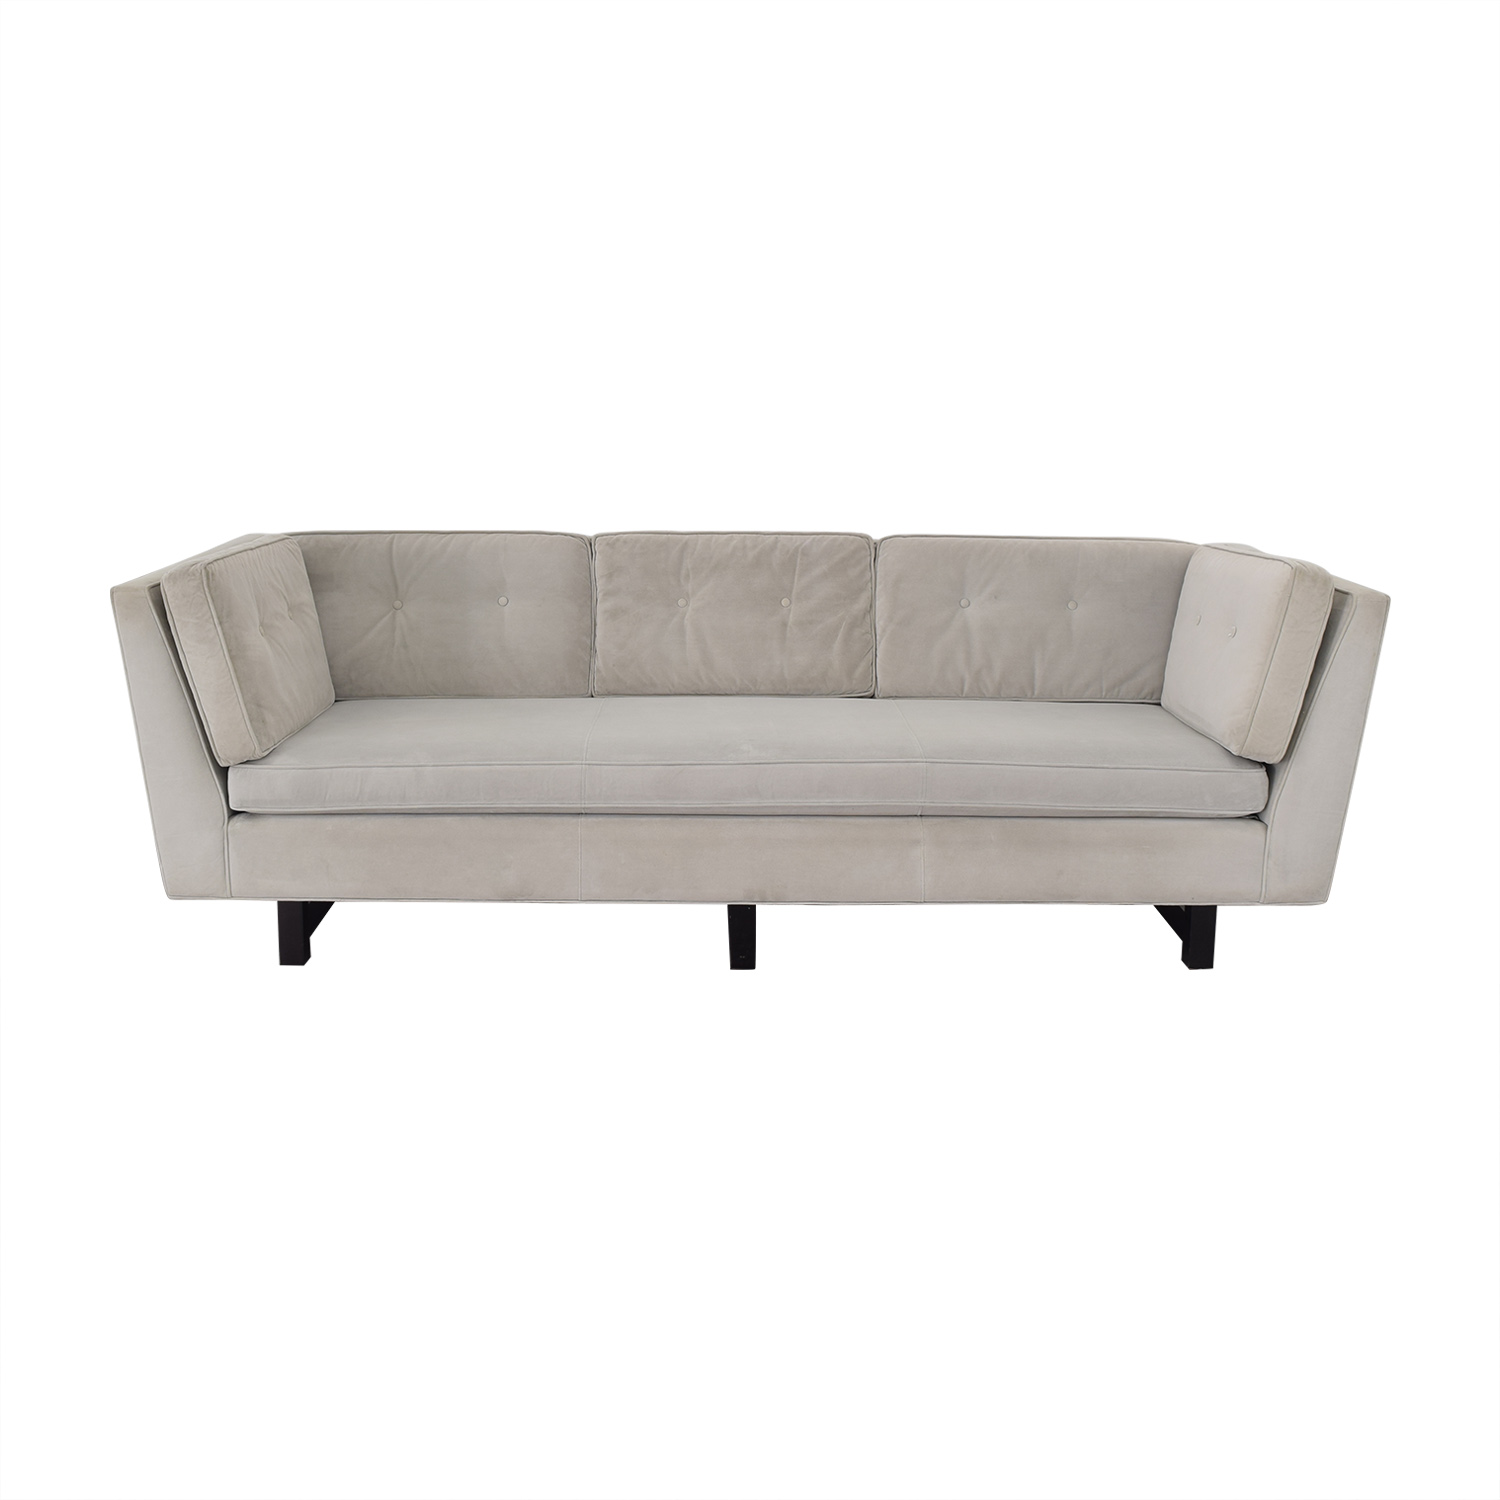 Room & Board Room & Board Naomi Bench Cushion Sofa nyc